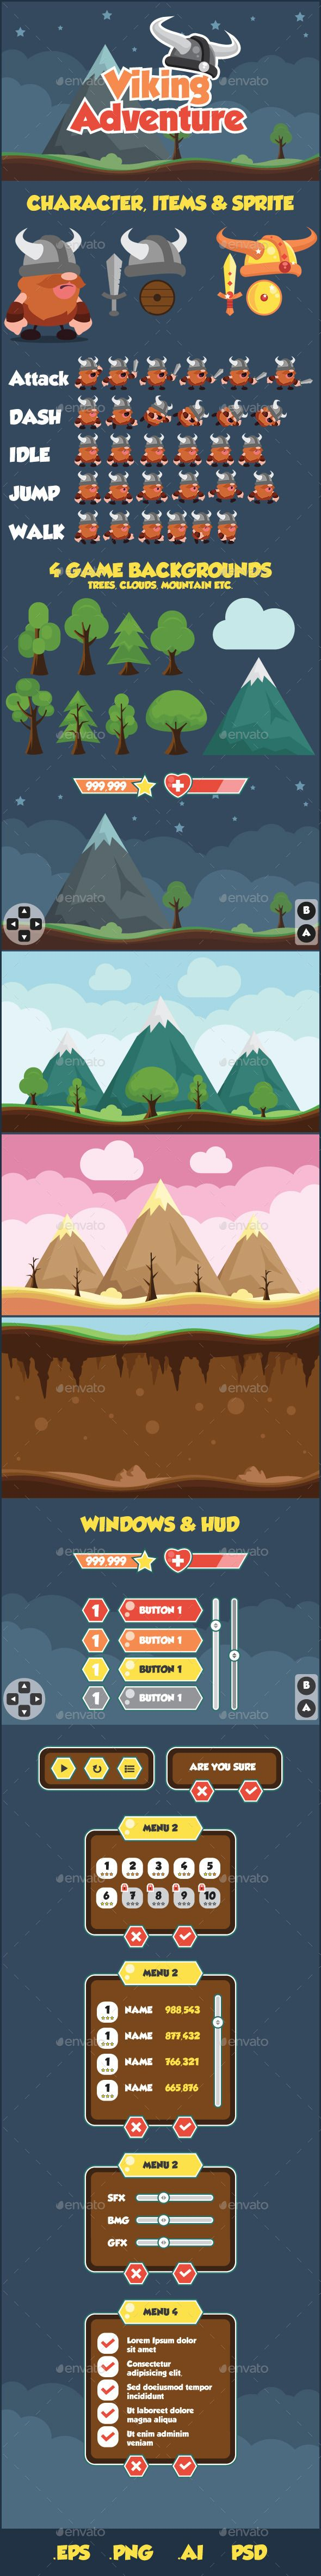 Viking Adventure Sidescroller Game UI | GraphicRiver